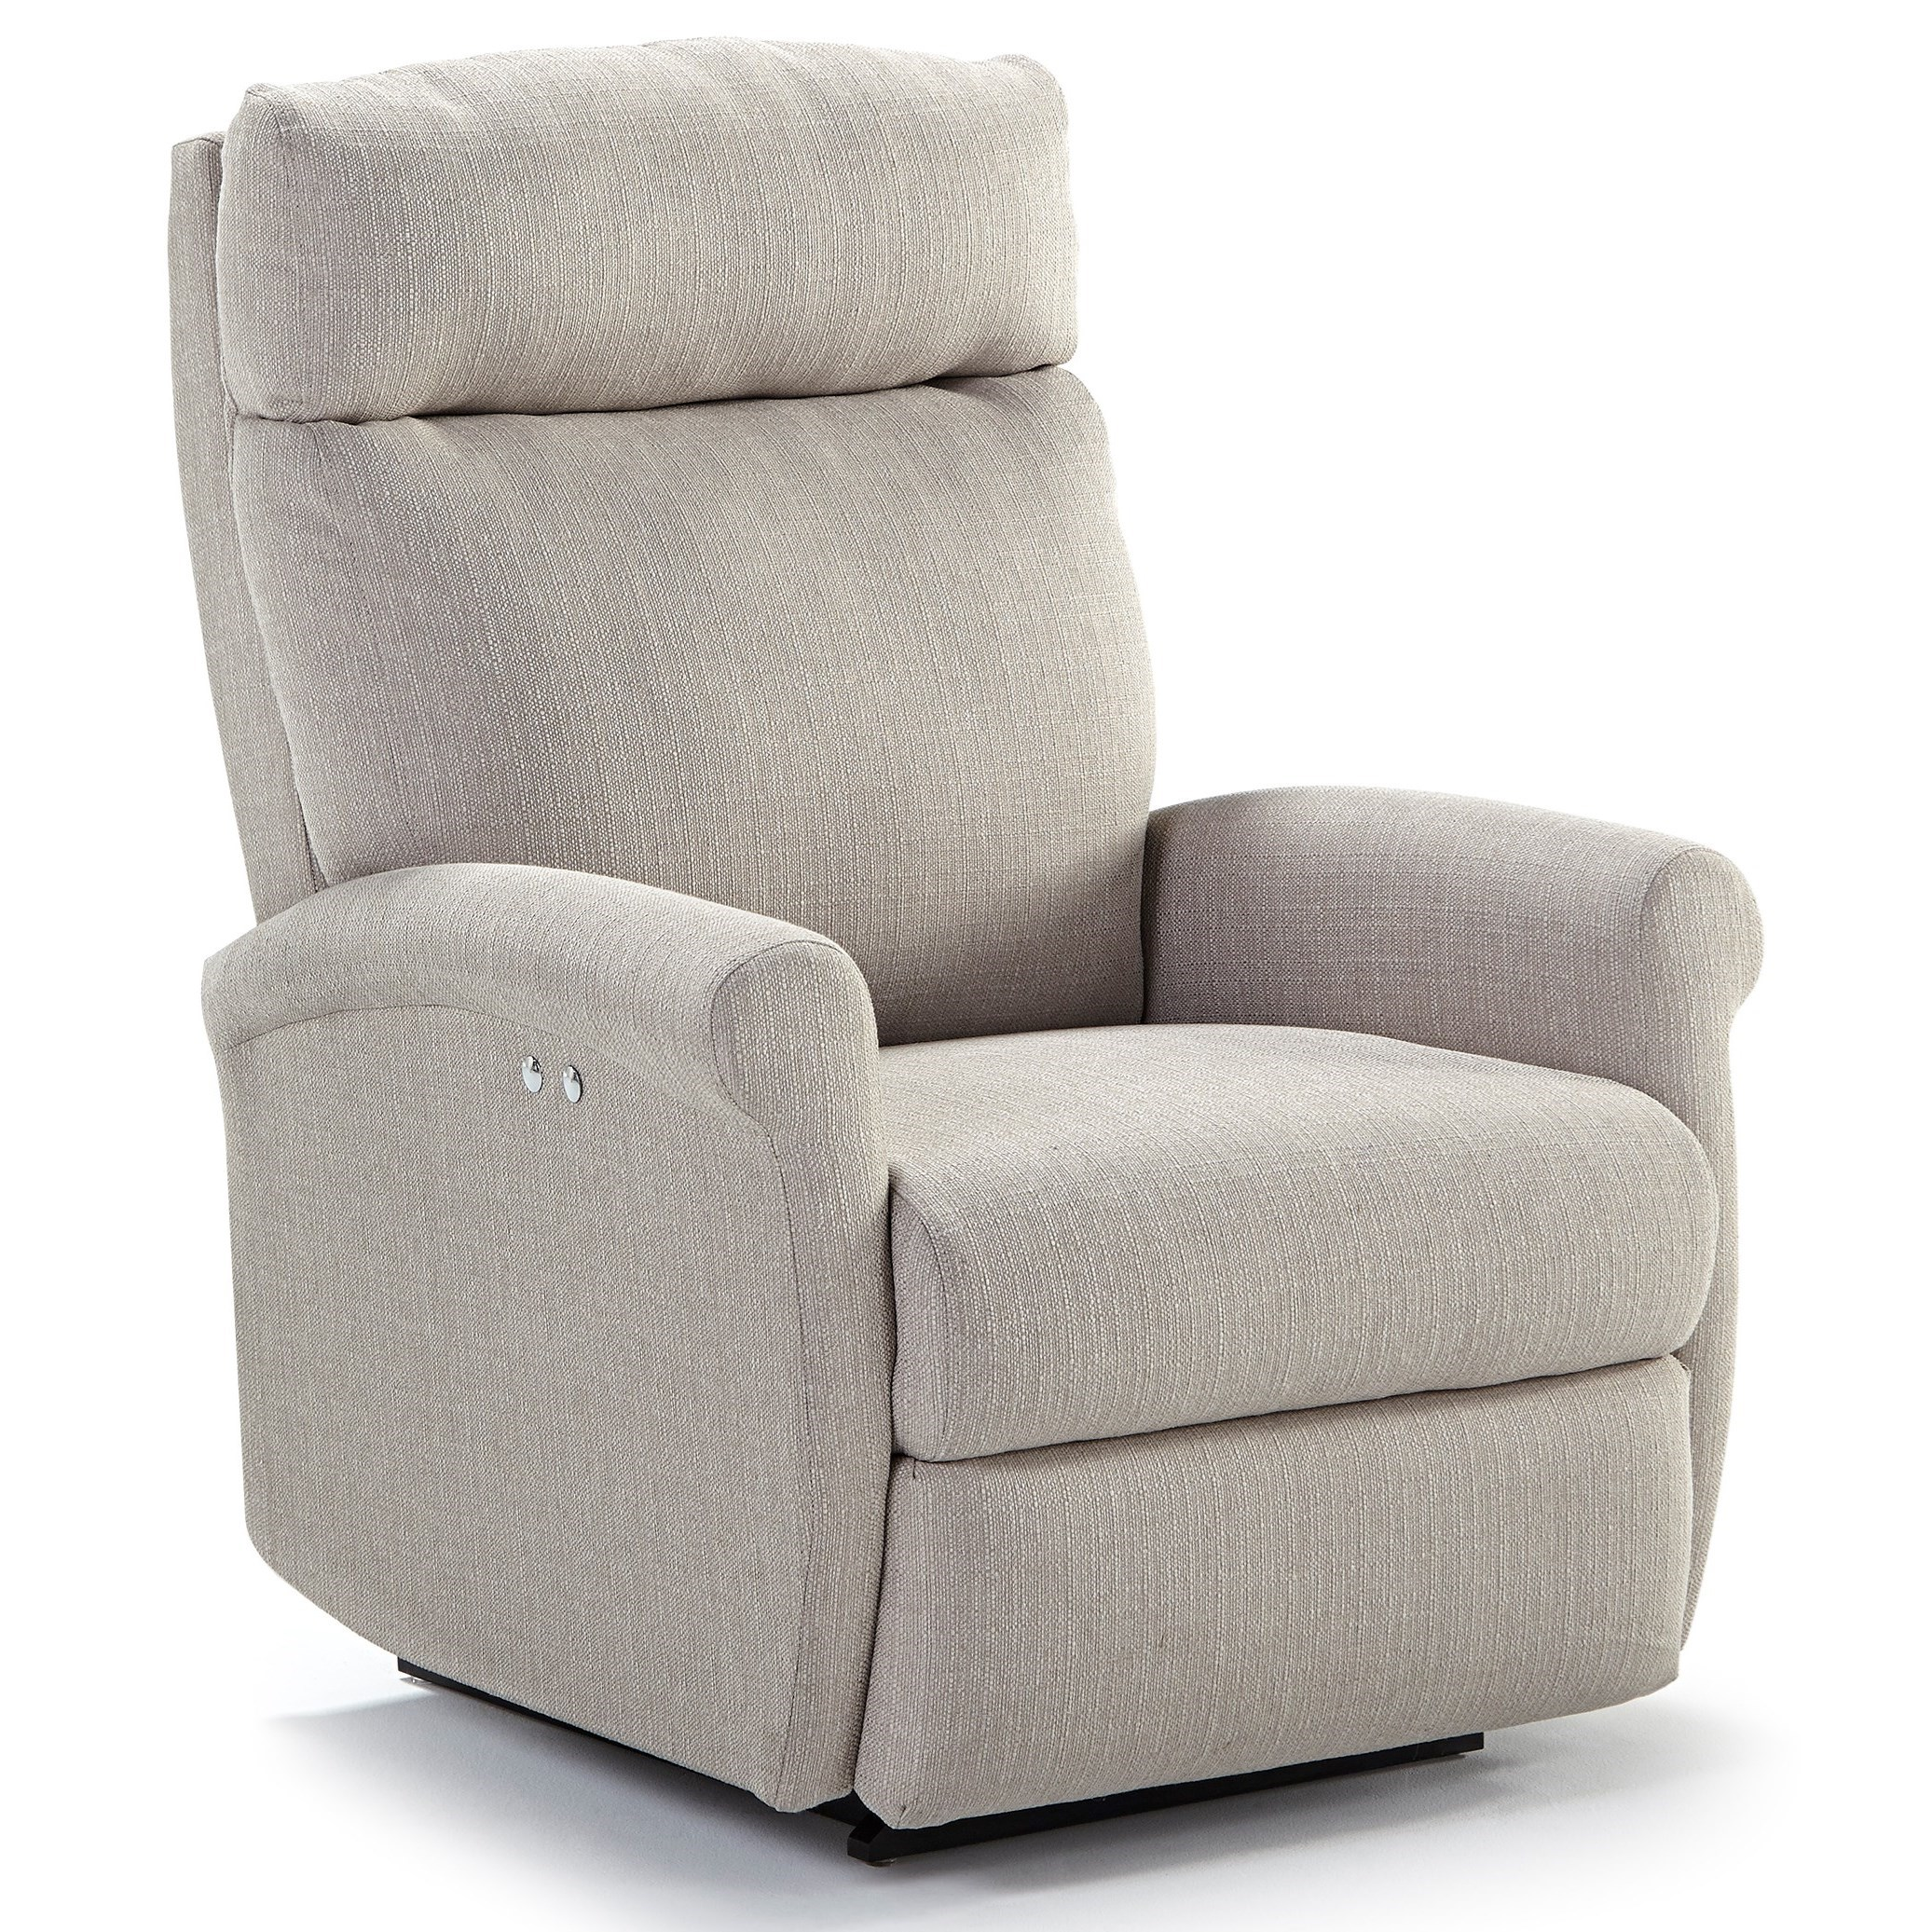 Codie Power Lift Recliner  by Best Home Furnishings at Baer's Furniture